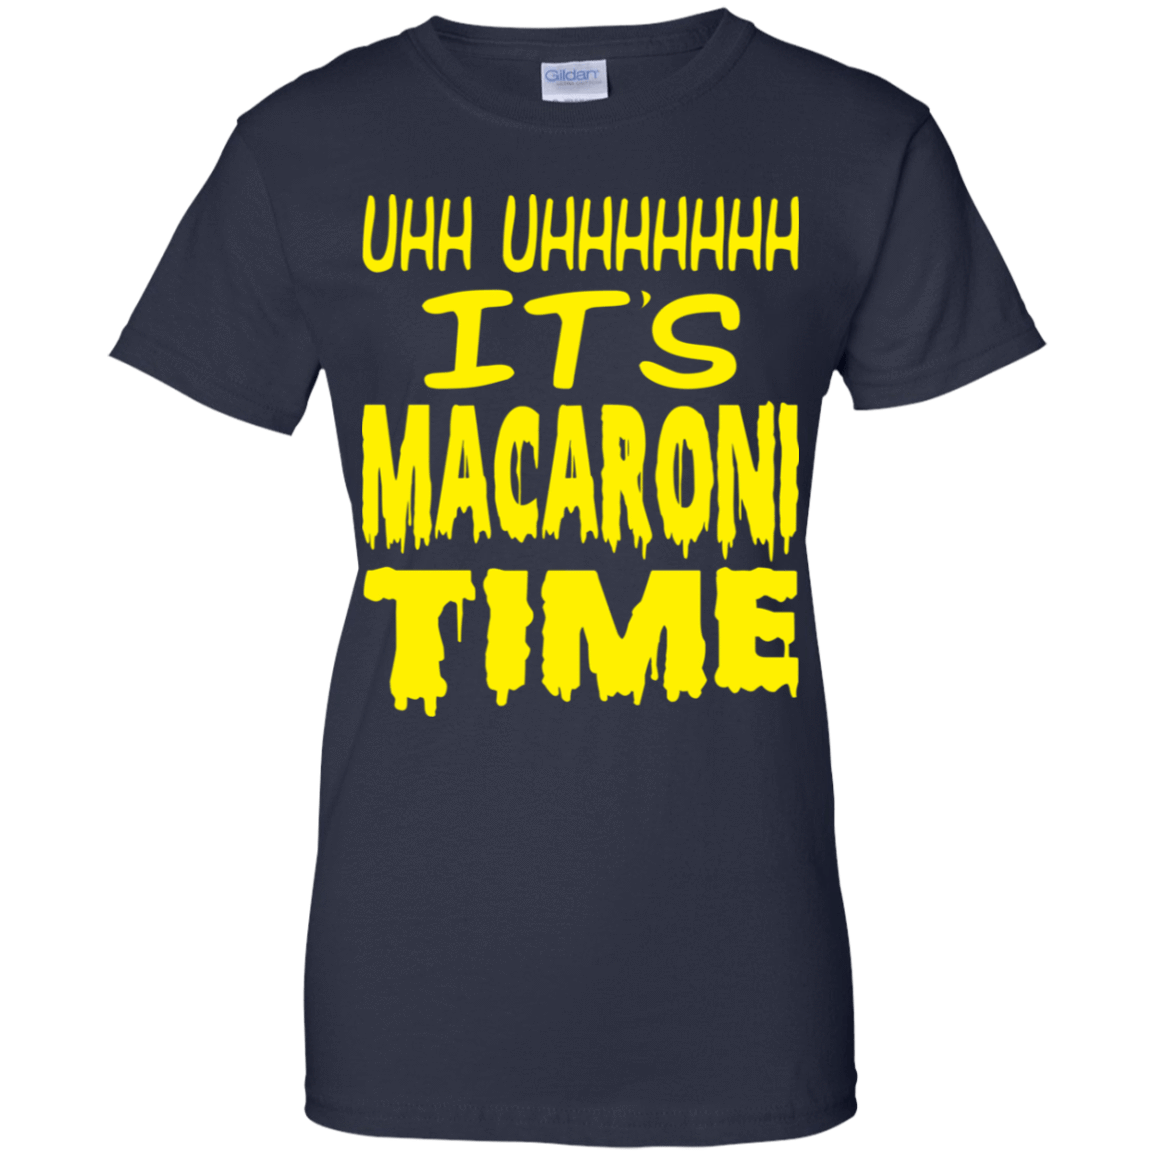 Uhh Uhhhhhhh It's Macaroni Time 939-9259-72774109-44765 - Tee Ript